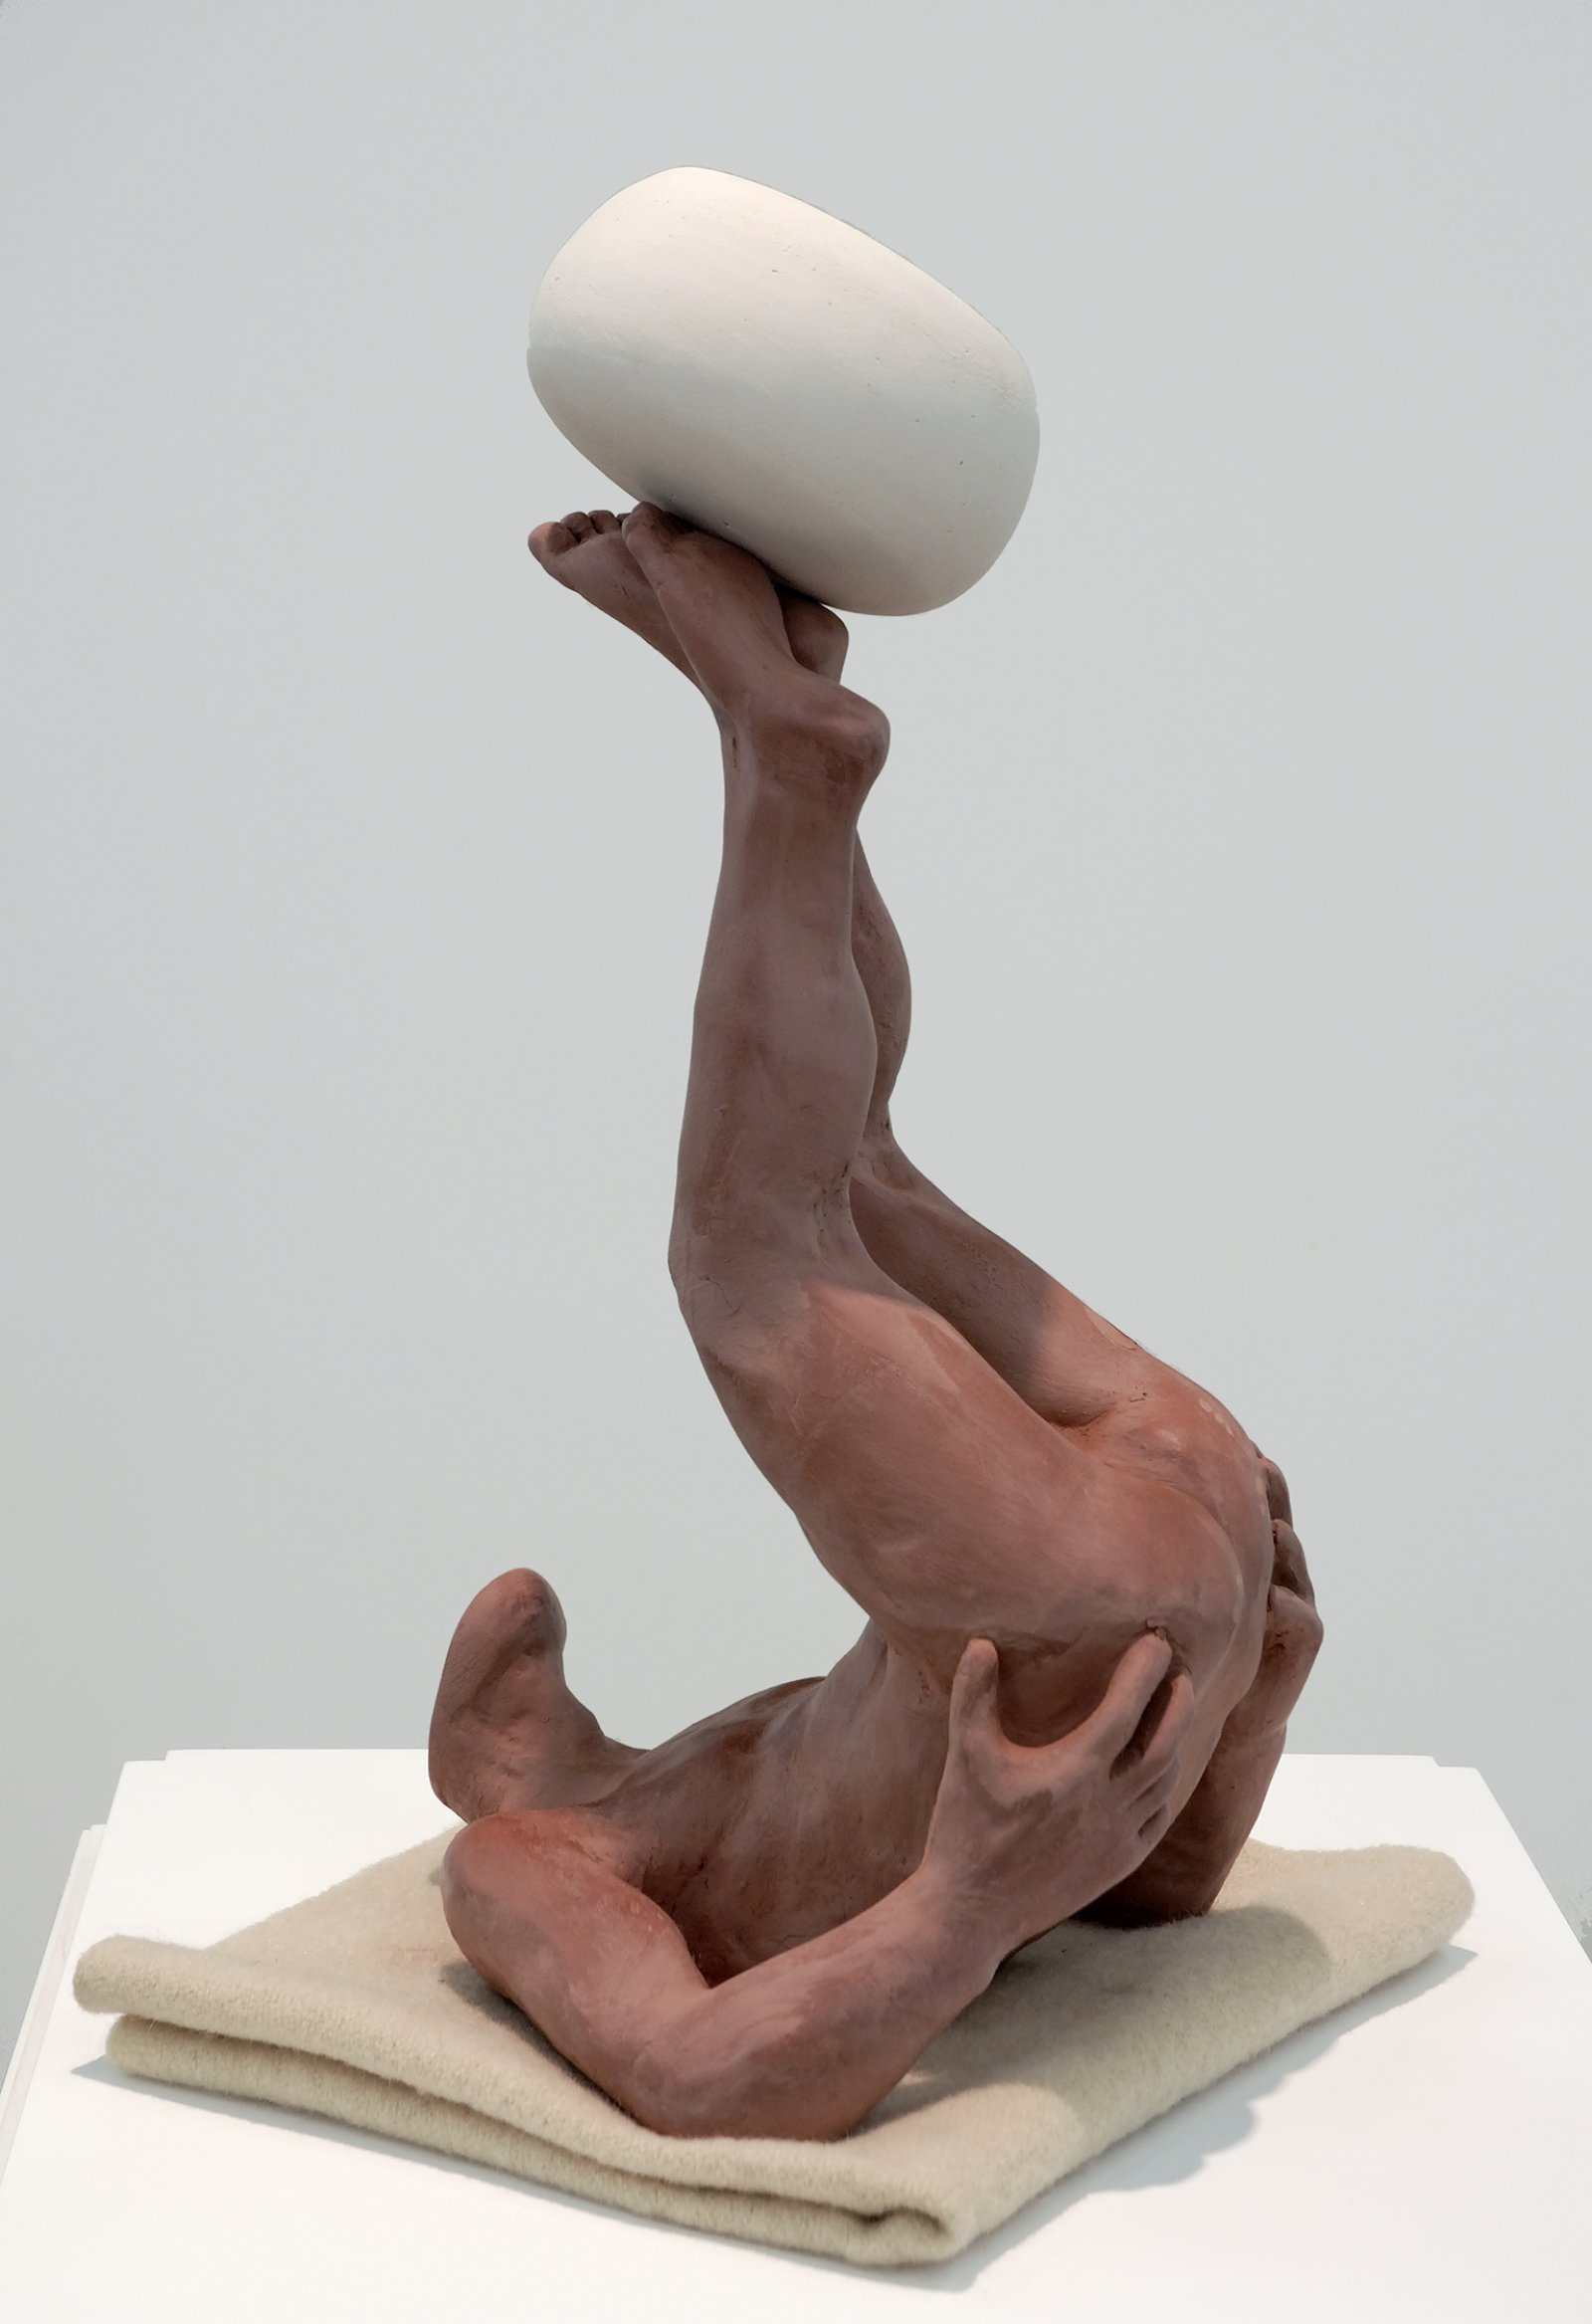 Damian Moppett, The Acrobat, 2006, terracotta bisque, wood, glass, 60 x 16 x 16 in. (152 x 41 x 41 cm) by Damian Moppett